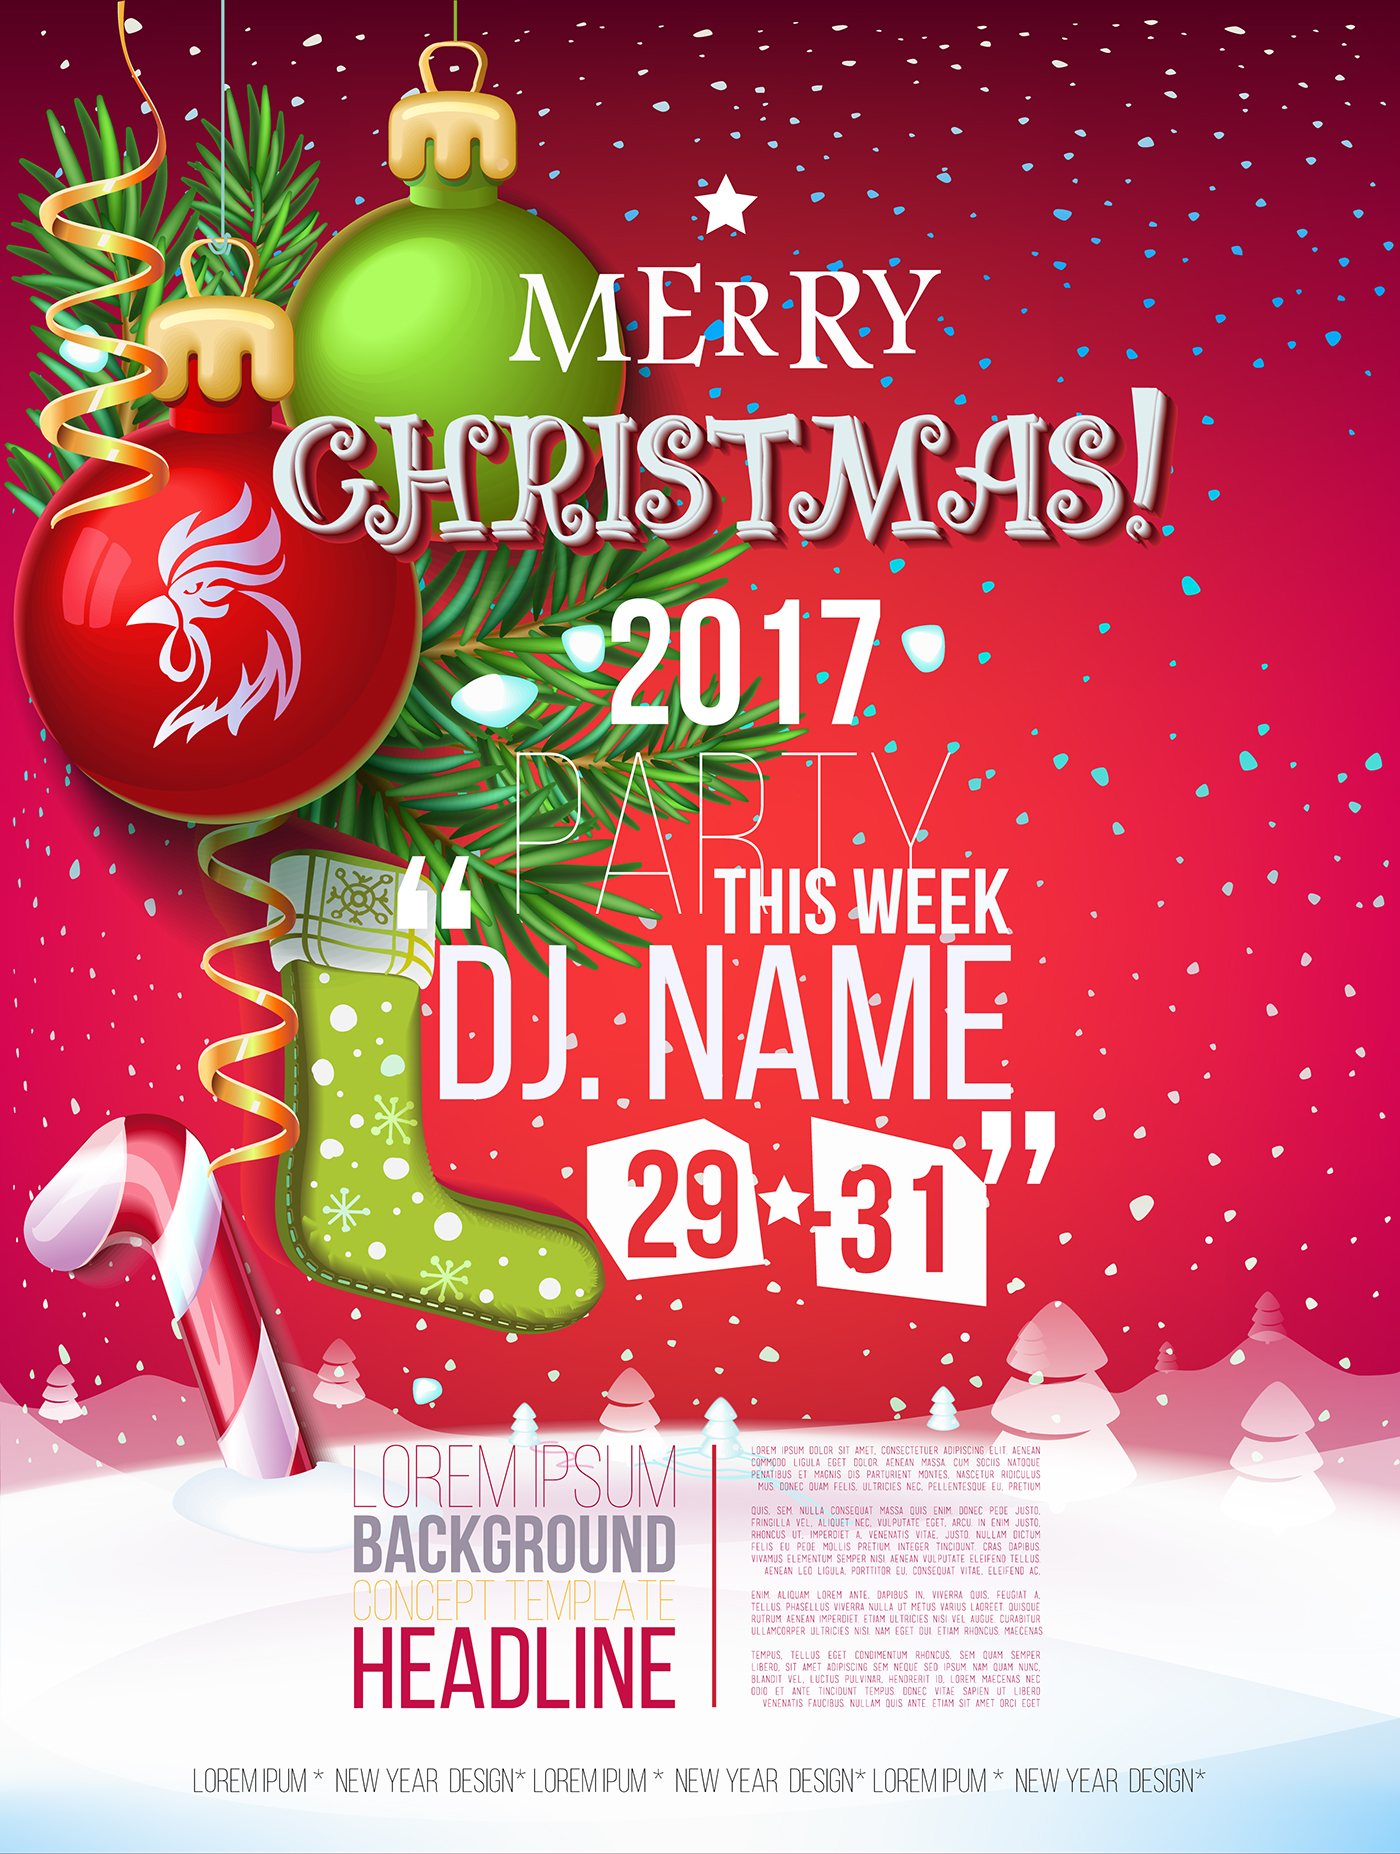 New 2017 And Happy Year Christmas Greetings Merry